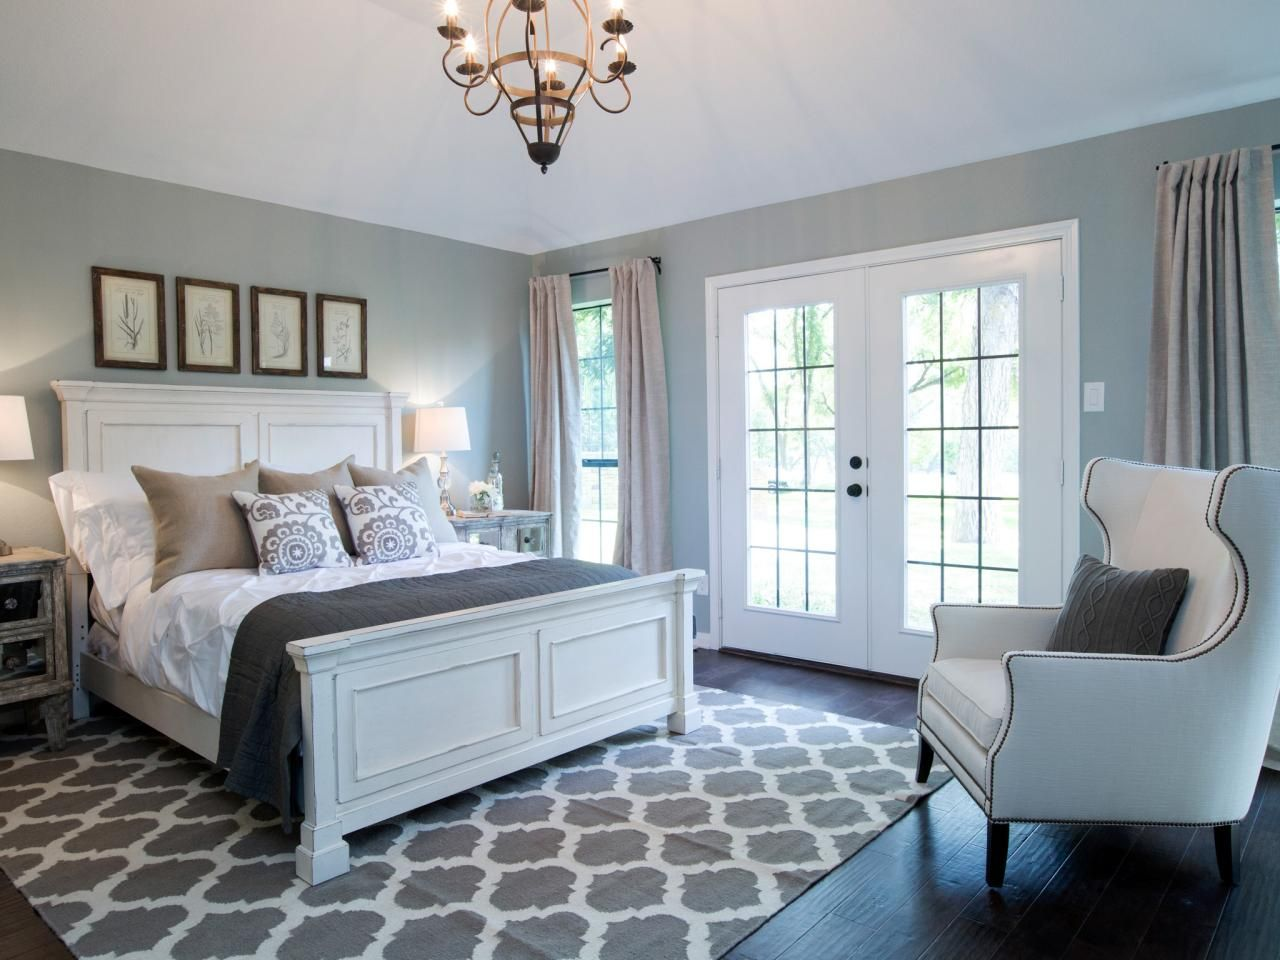 Master Bedroom Interior Design Ideas master bedroom design idea pleasing design modest designer master bedrooms photos inspiring design ideas Fixer Upper Yours Mine Ours And A Home On The River Master Bedroom